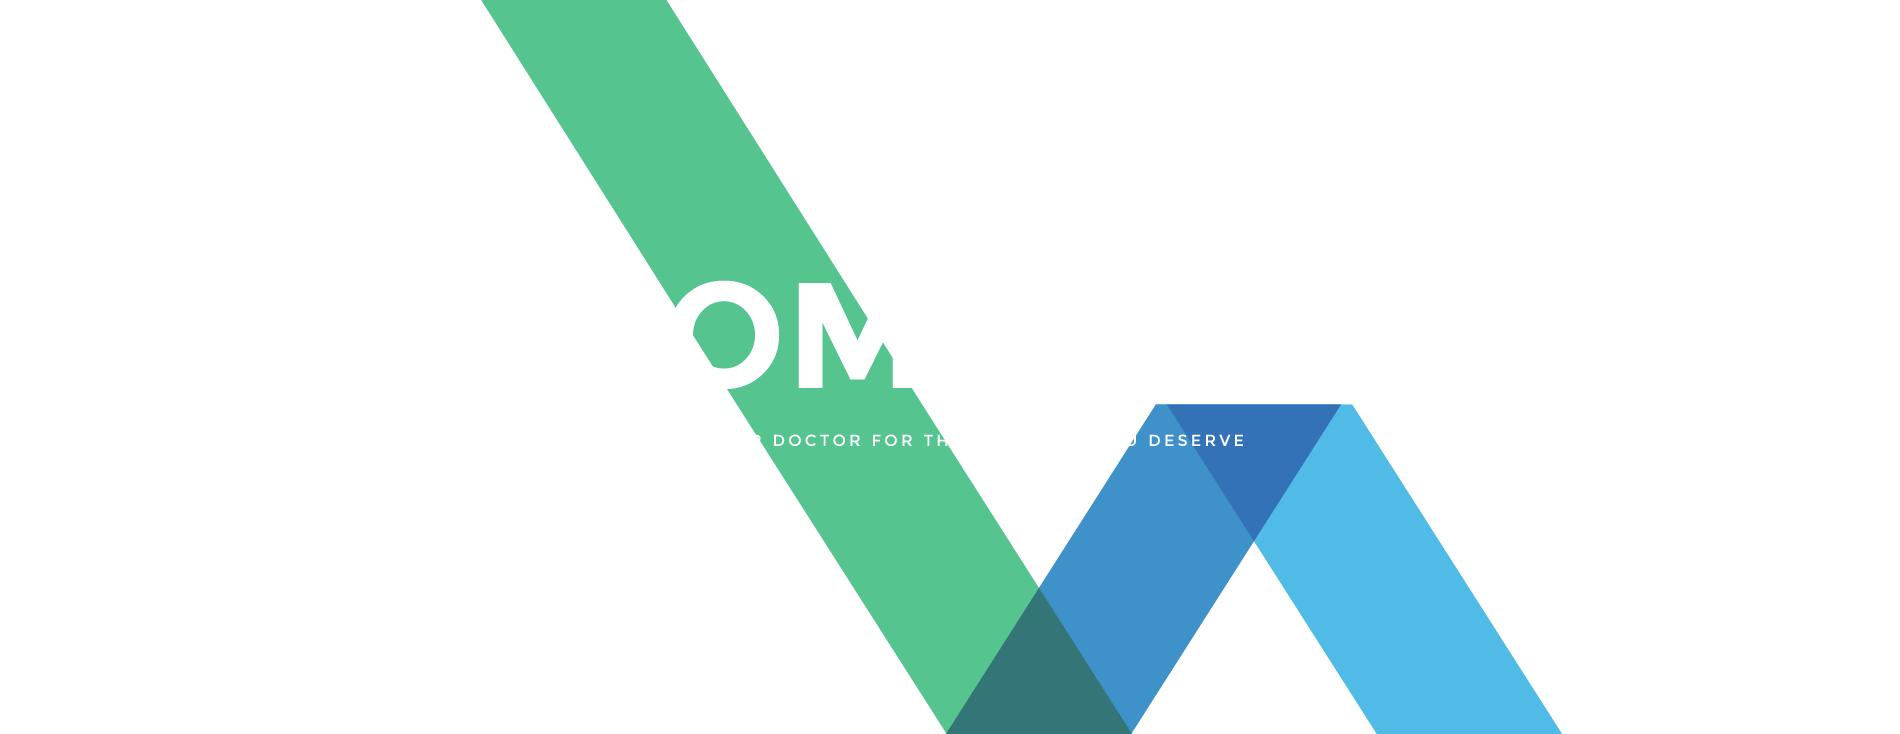 COMFORT.  ASK YOUR DOCCTOR FOR THE COMFORT YOU DESERVE